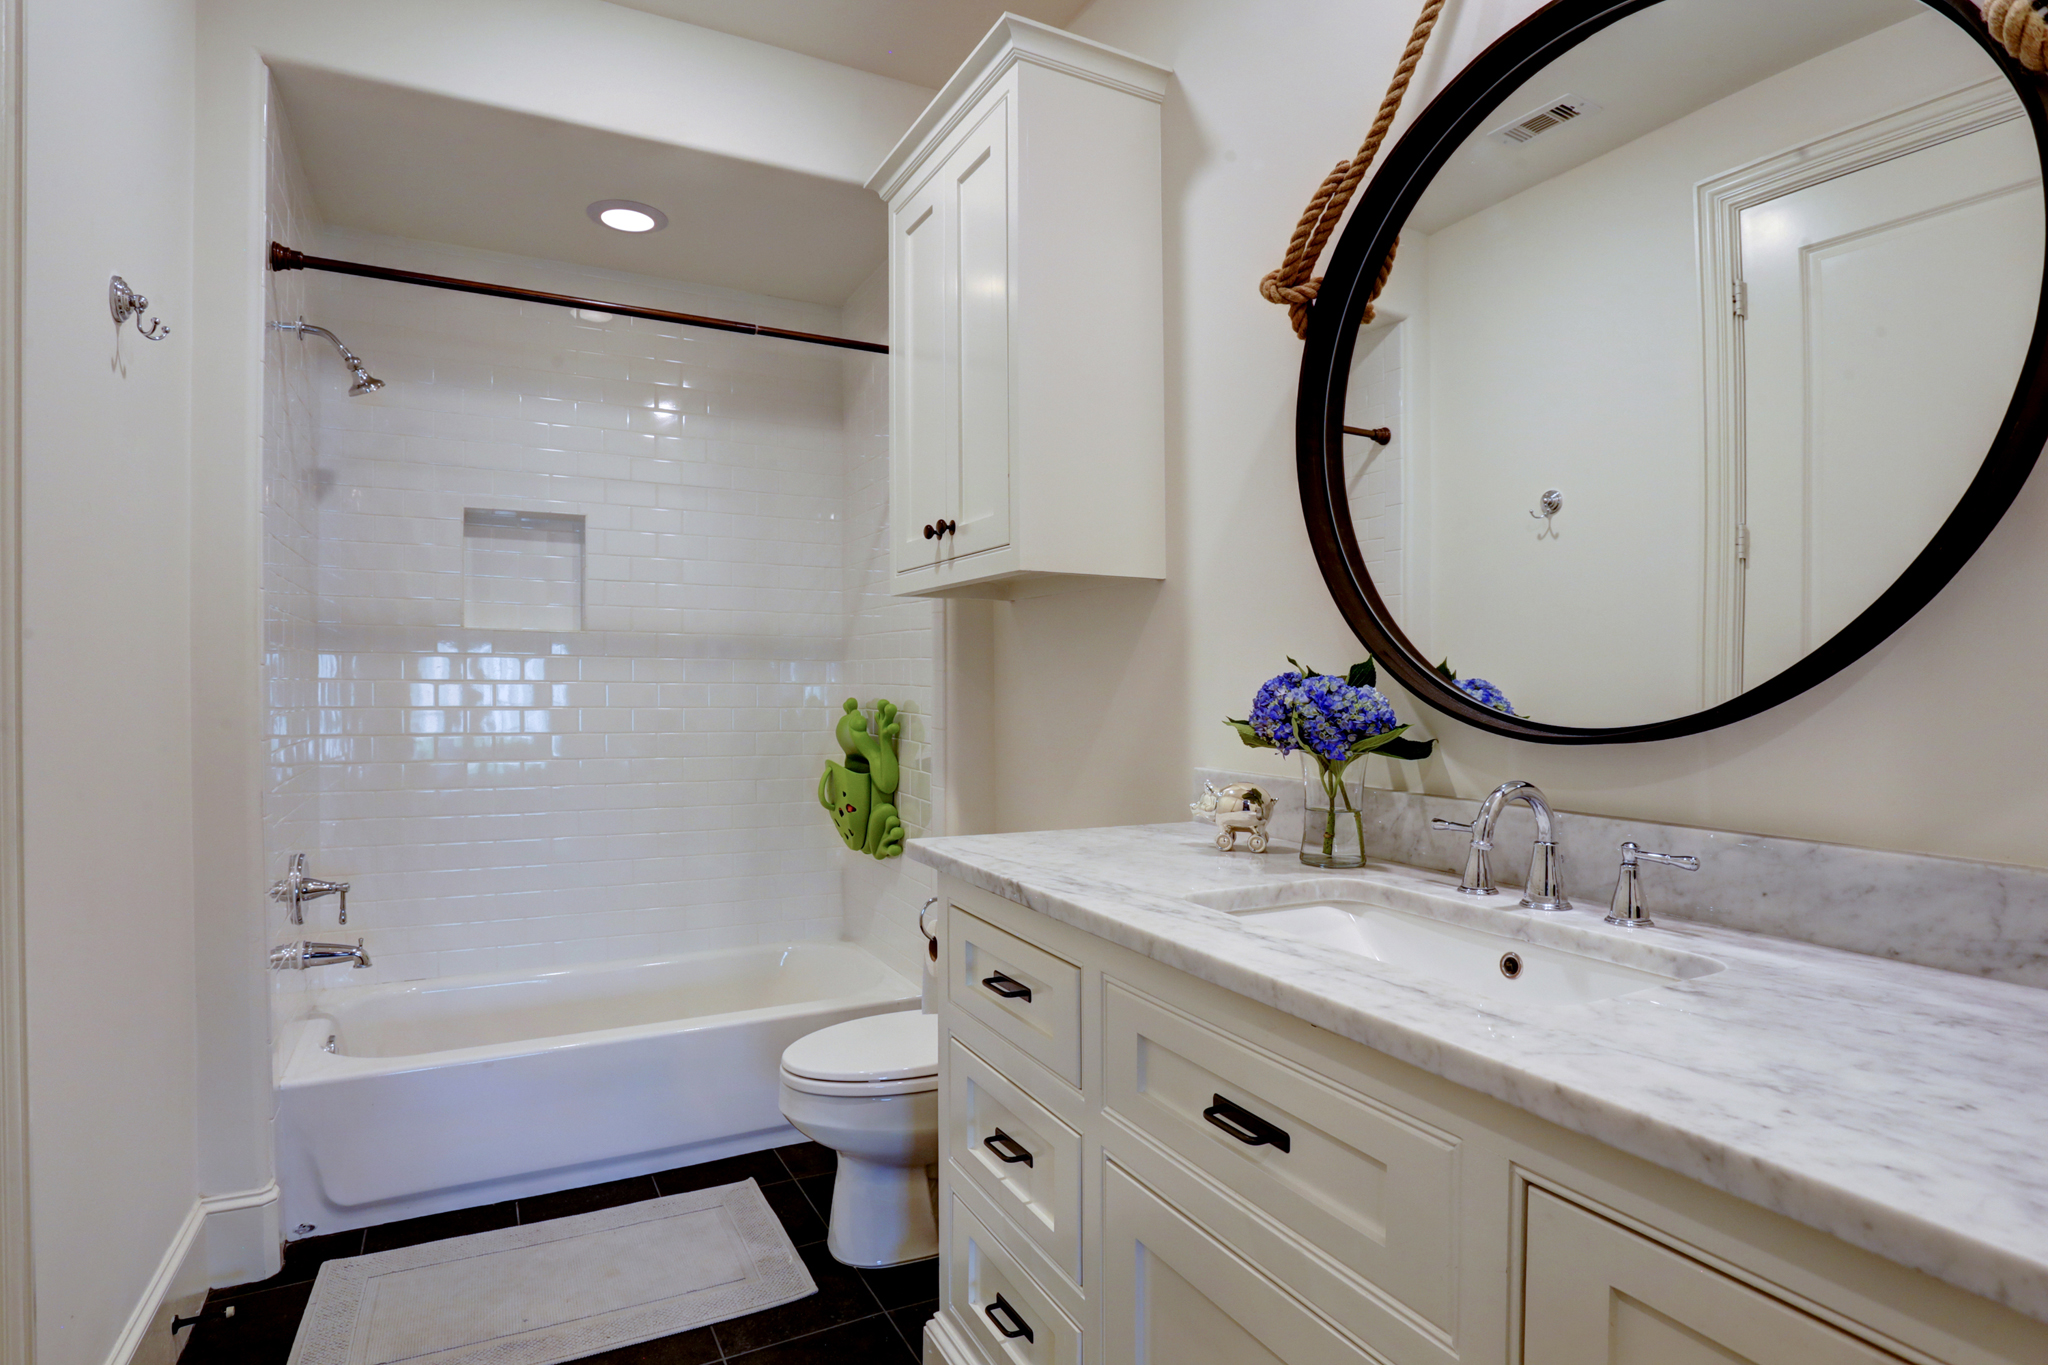 Transitional luxury home bathroom